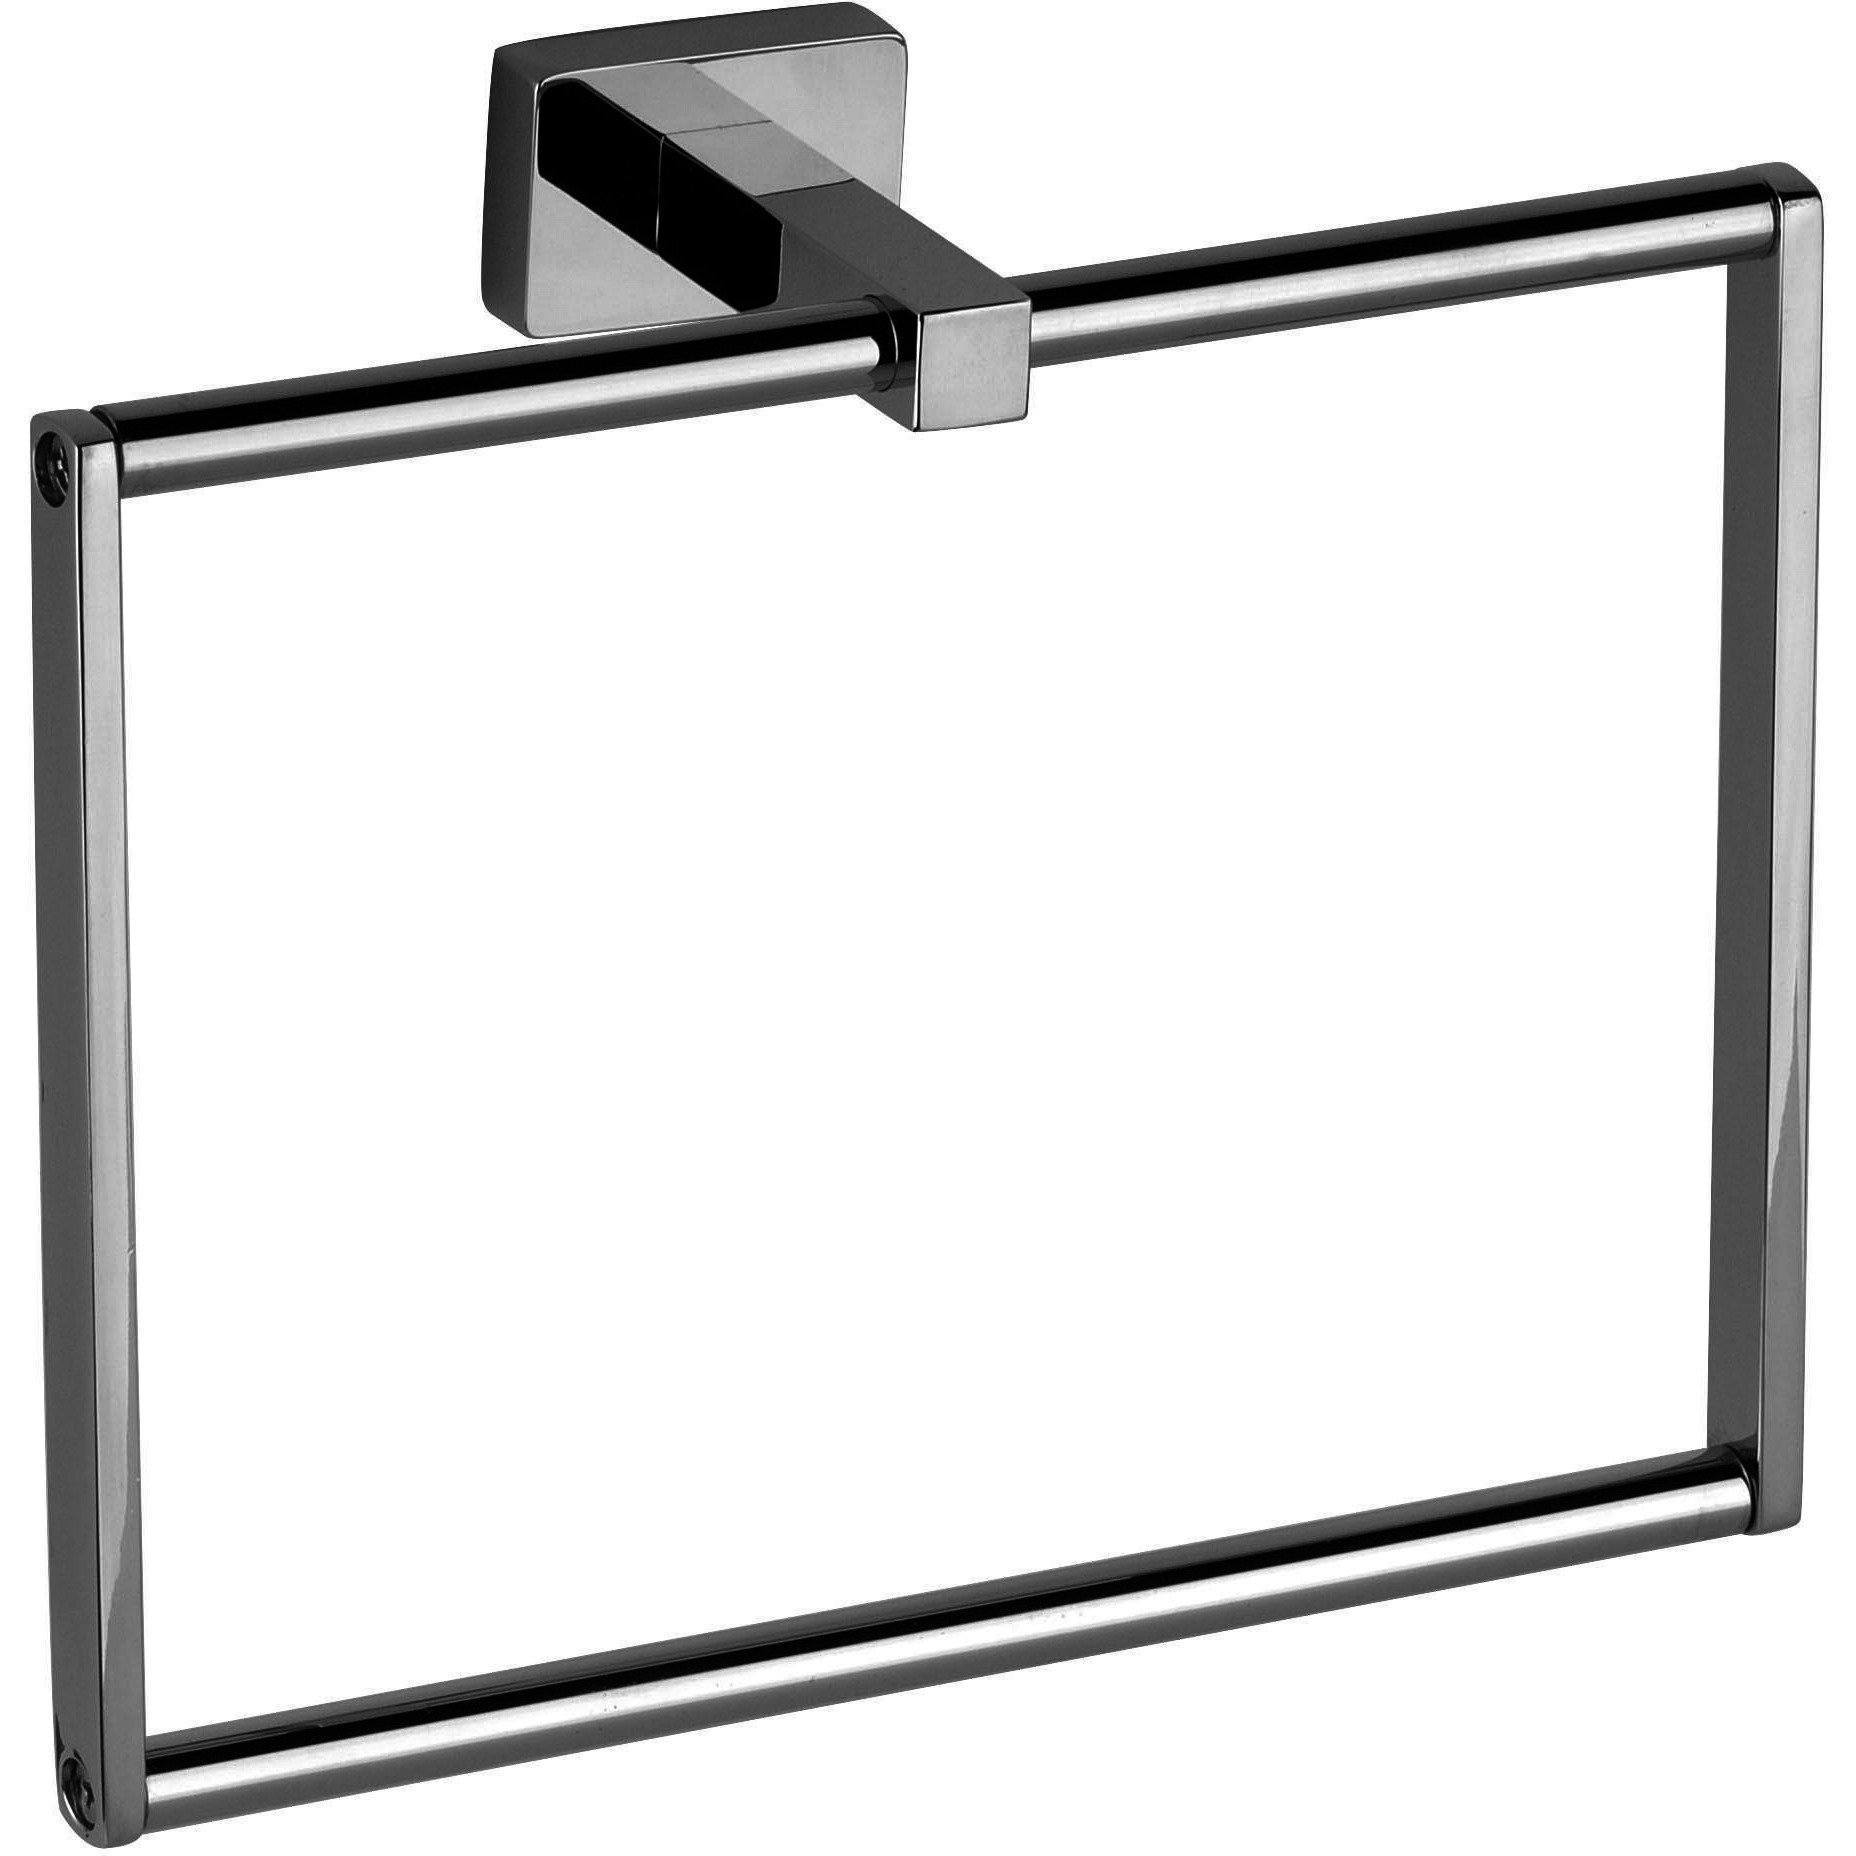 DI NY Square Towel Bar Rail Holder Hanger for Bathroom Towel Rack Chrome - 8.3-inch